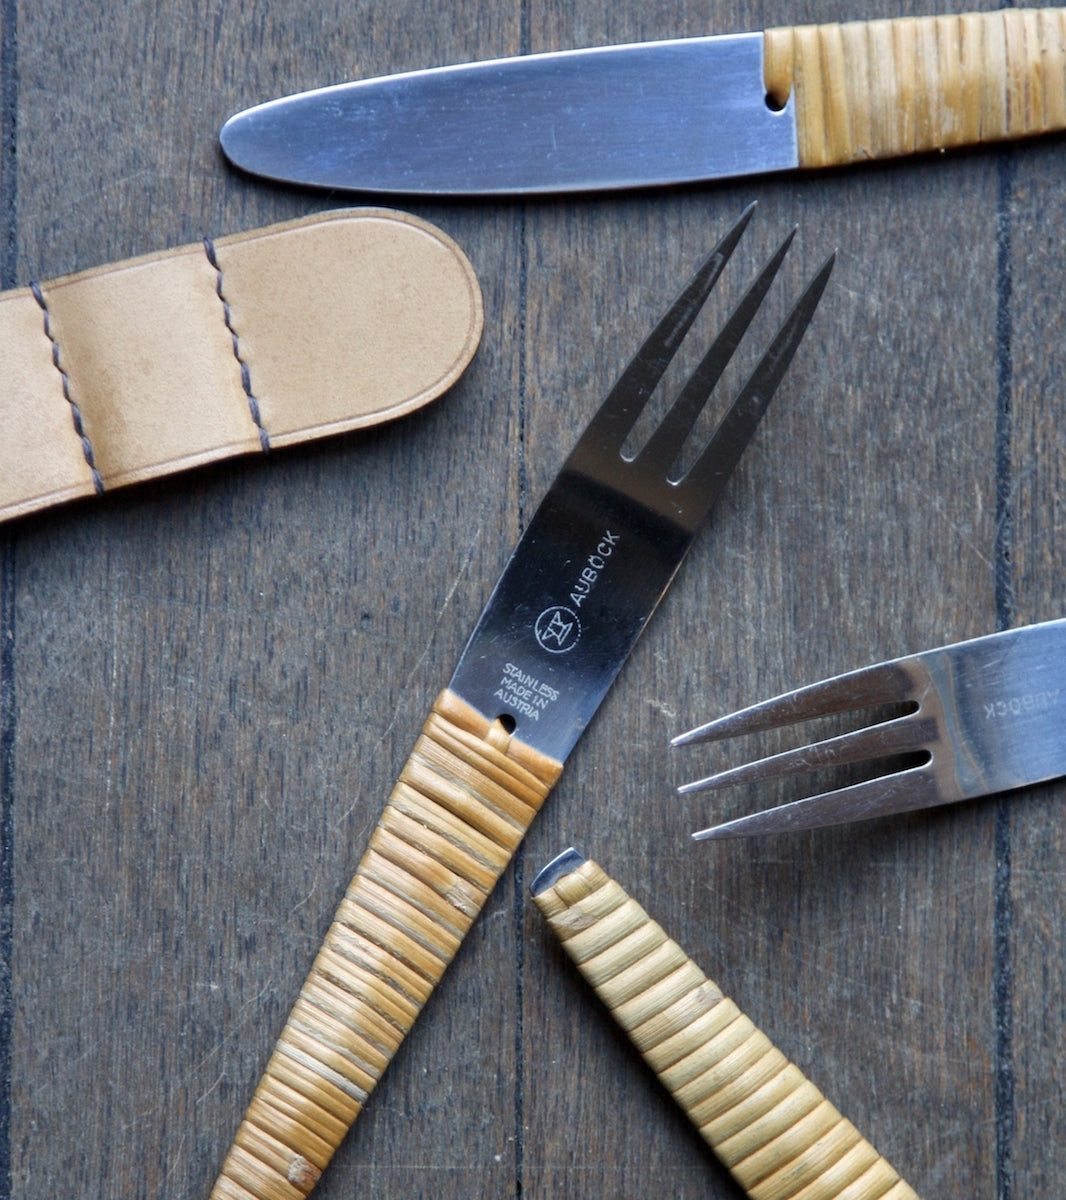 Close-up of Two Sets of Vintage Metal Knives & Forks, Carl Auböck